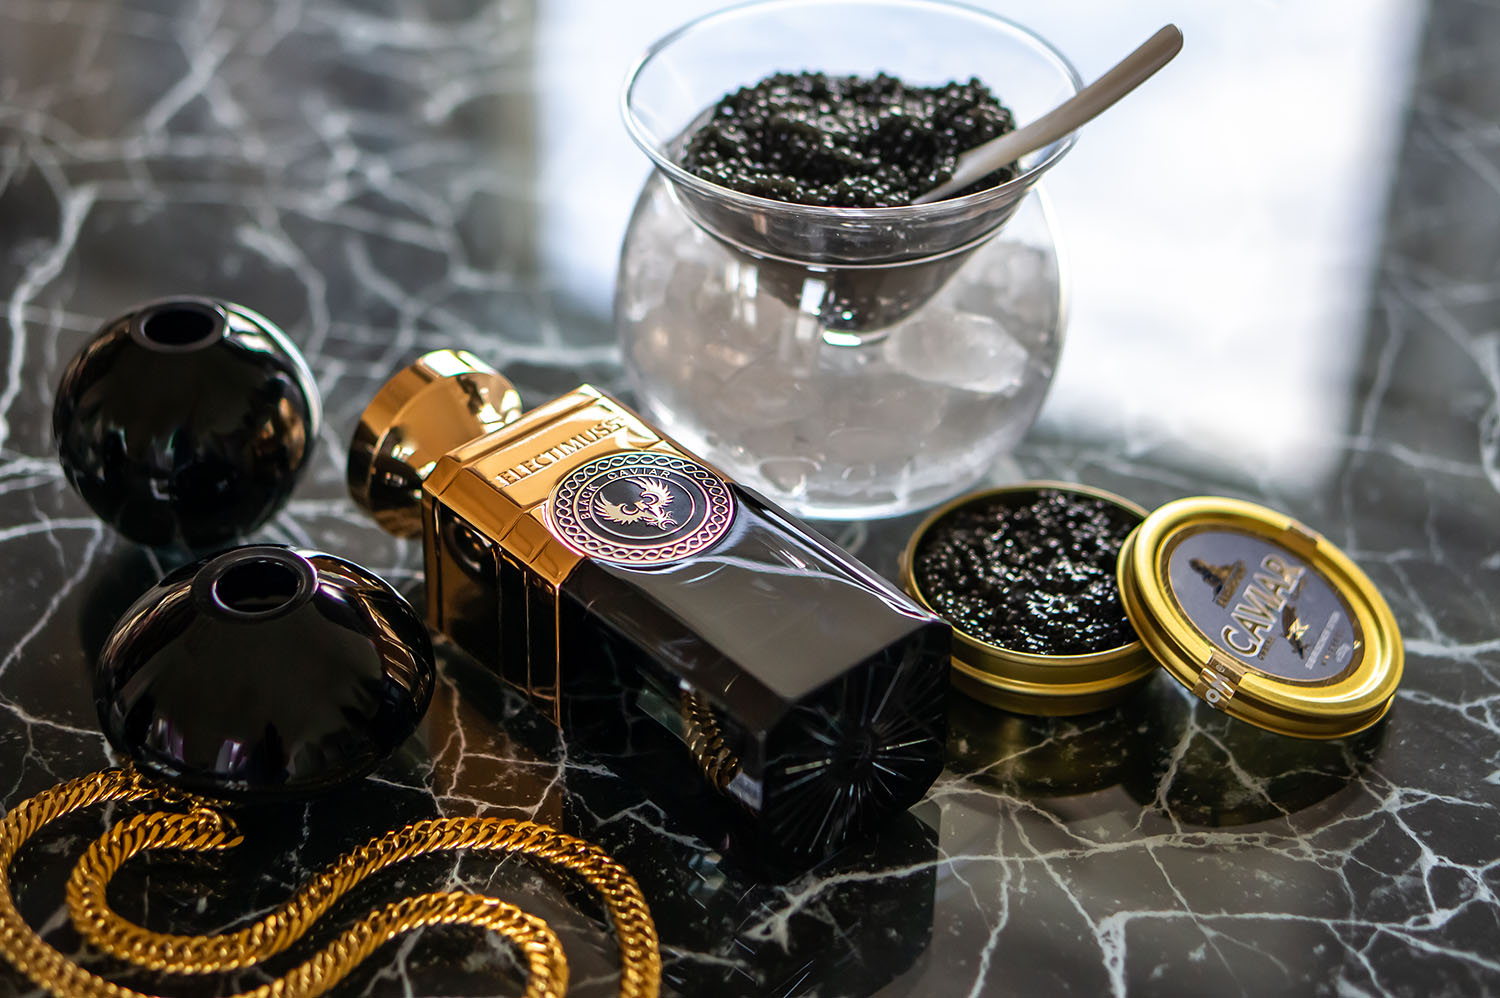 Black Caviar as a perfume, can it work? Electimuss London review